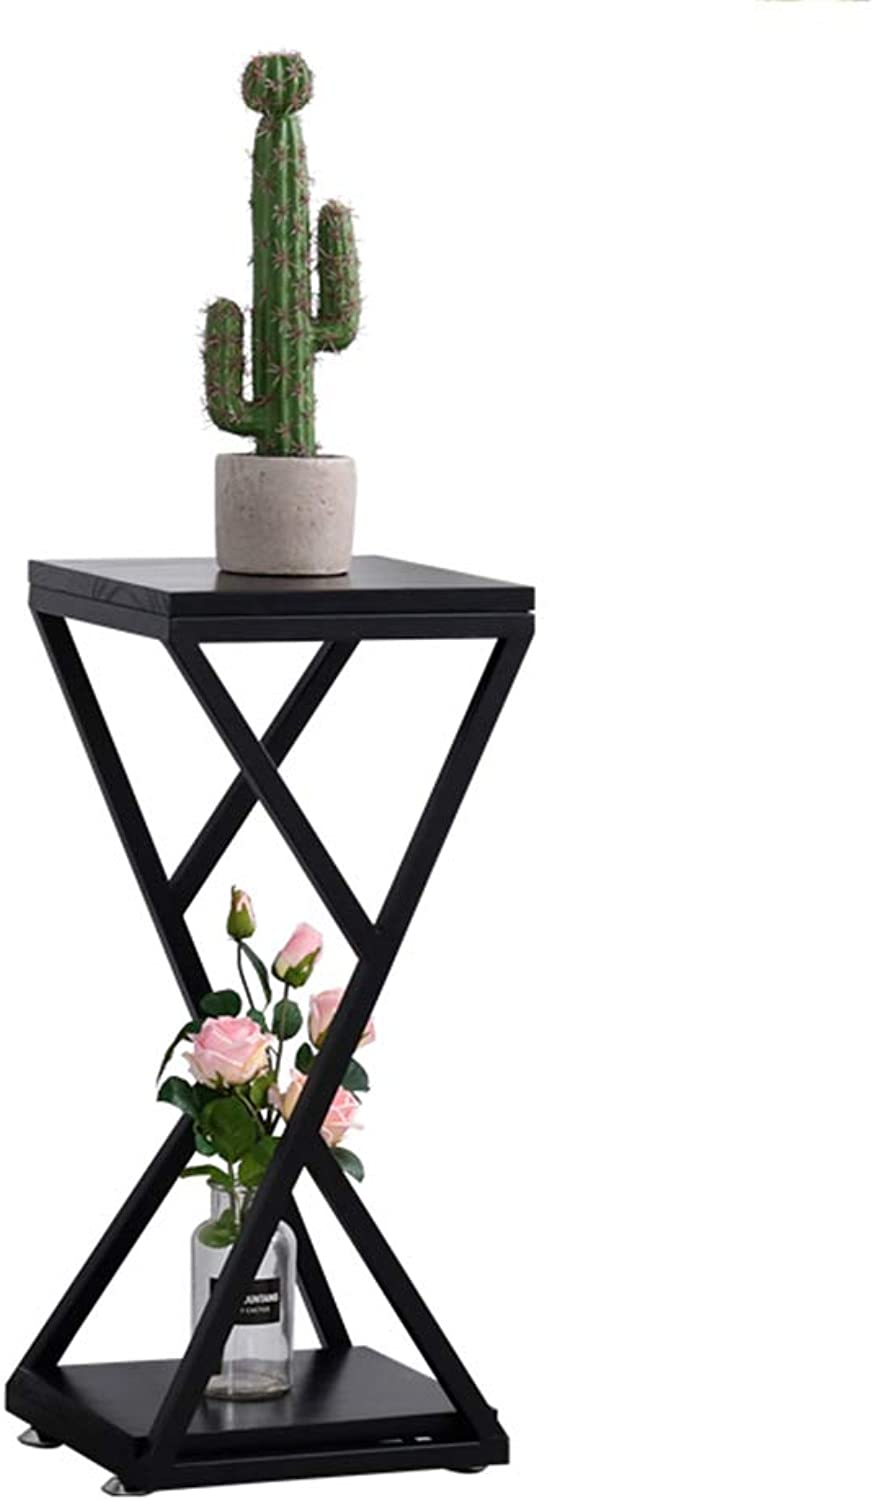 LYXPUZI Nordic Small Coffee Table Flower Rack Corner Sofa Side Table Mini Table Side Table Sofa Cabinet (color   Black, Size   30  30  51cm)